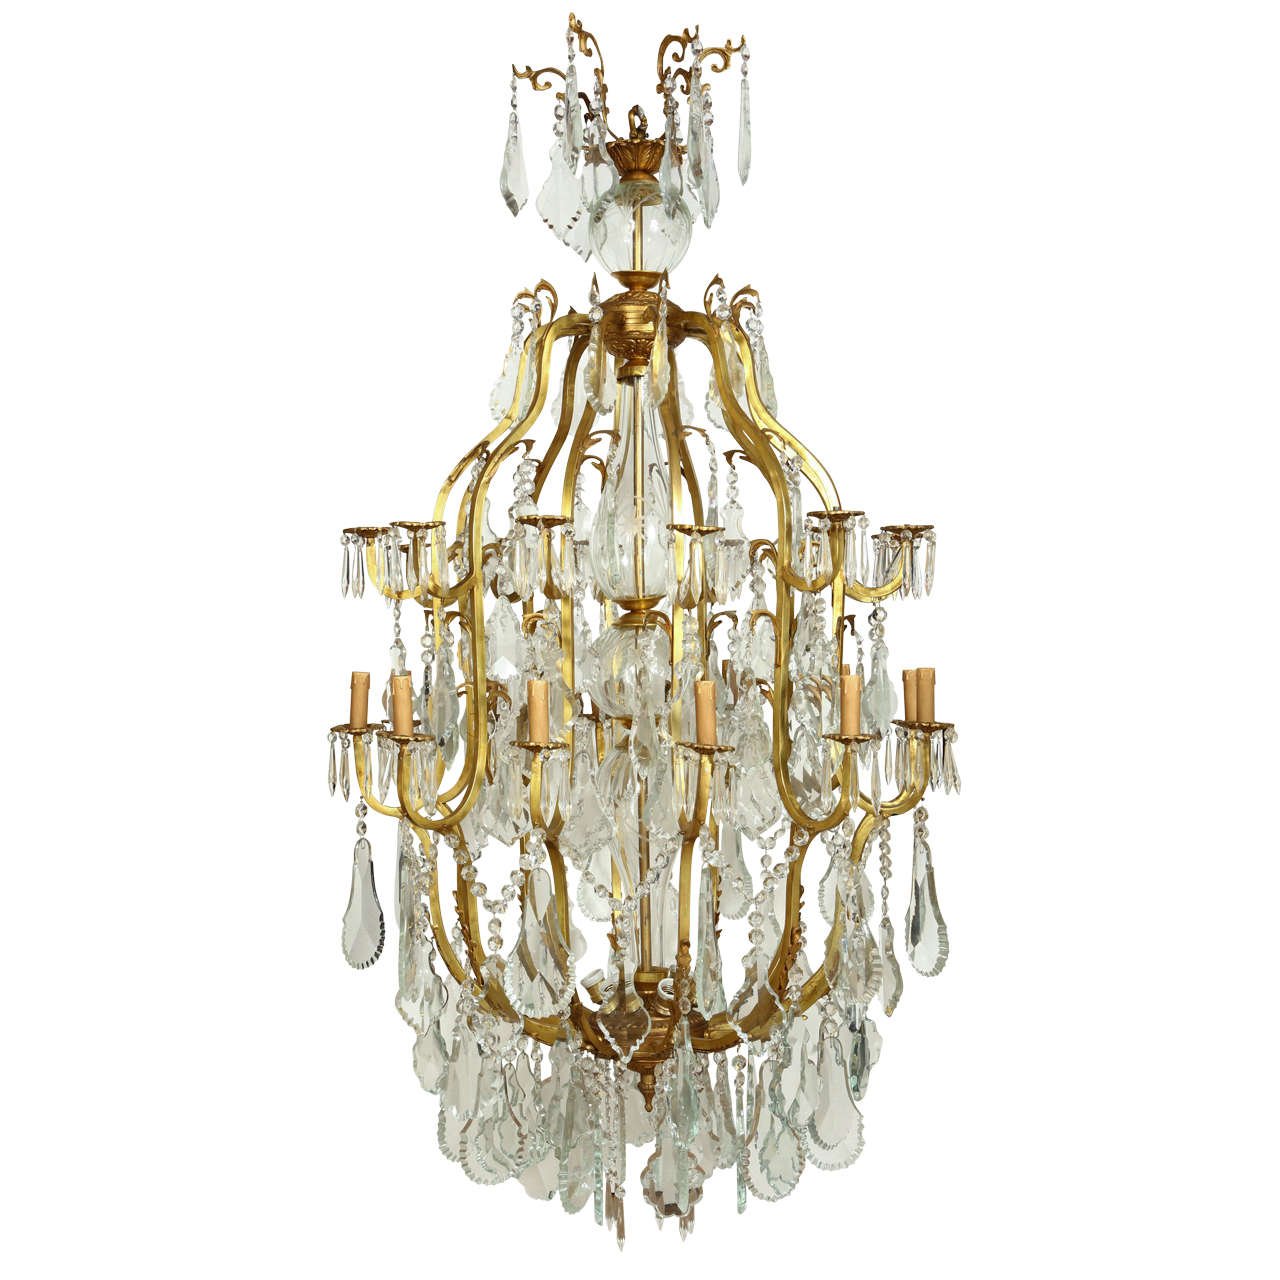 Huge Rococo Style Gilt Bronze And Glass Chandelier